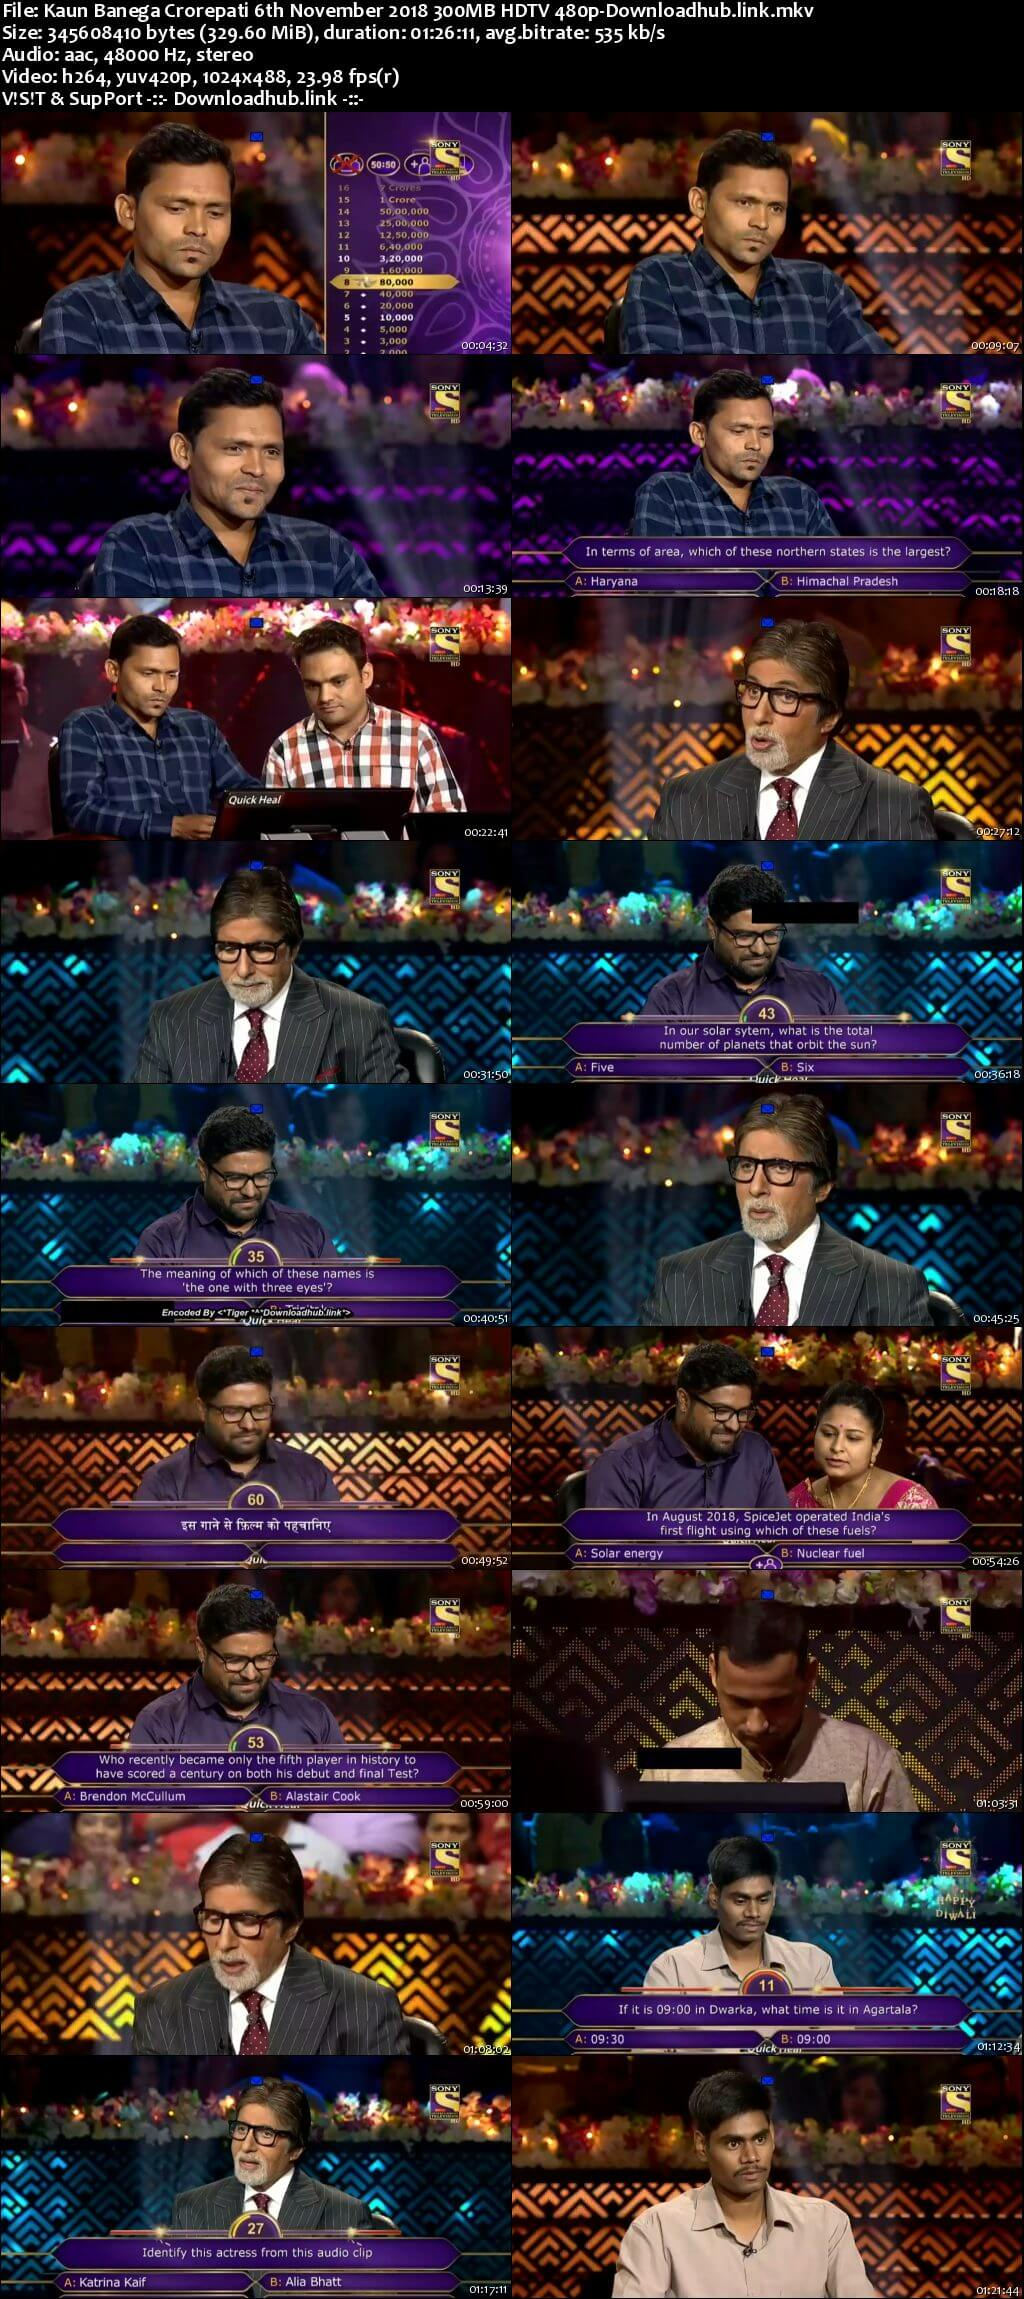 Kaun Banega Crorepati 6th November 2018 300MB HDTV 480p